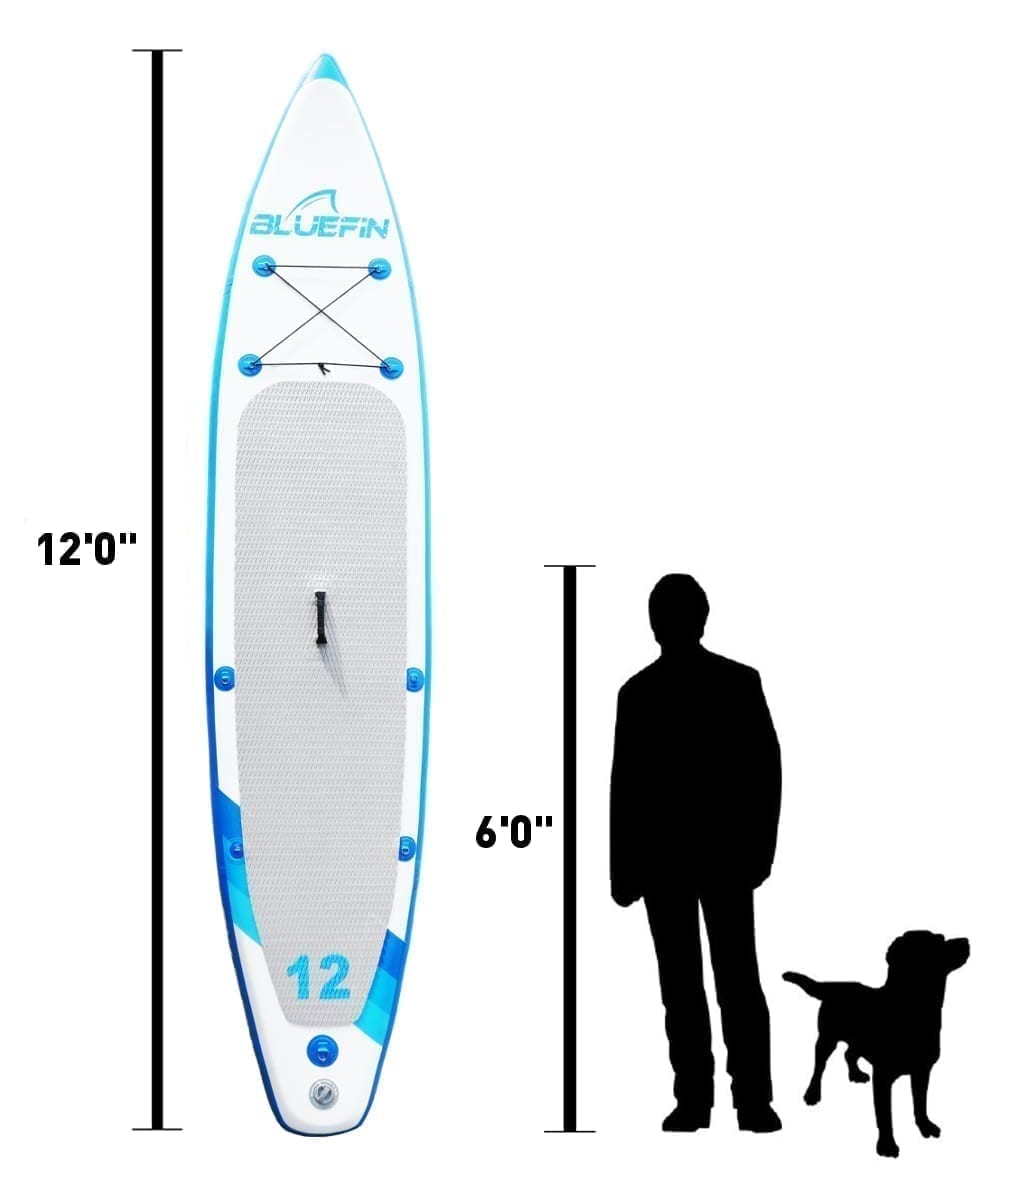 Bluefin inflatable stand up paddle board dimensions